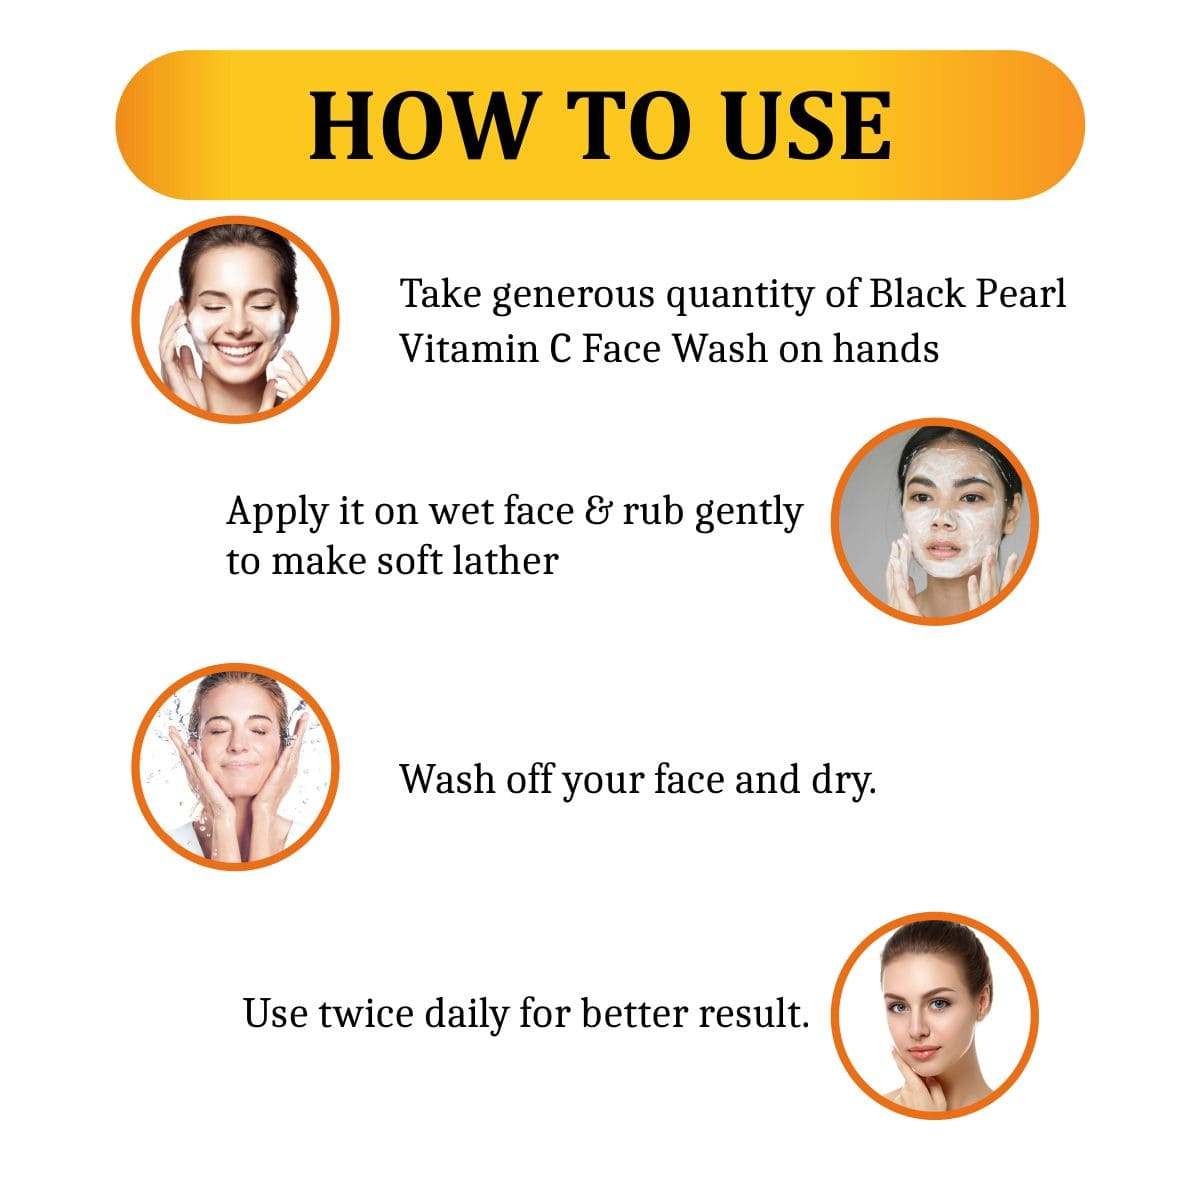 Vitamin C Face Wash How To Use